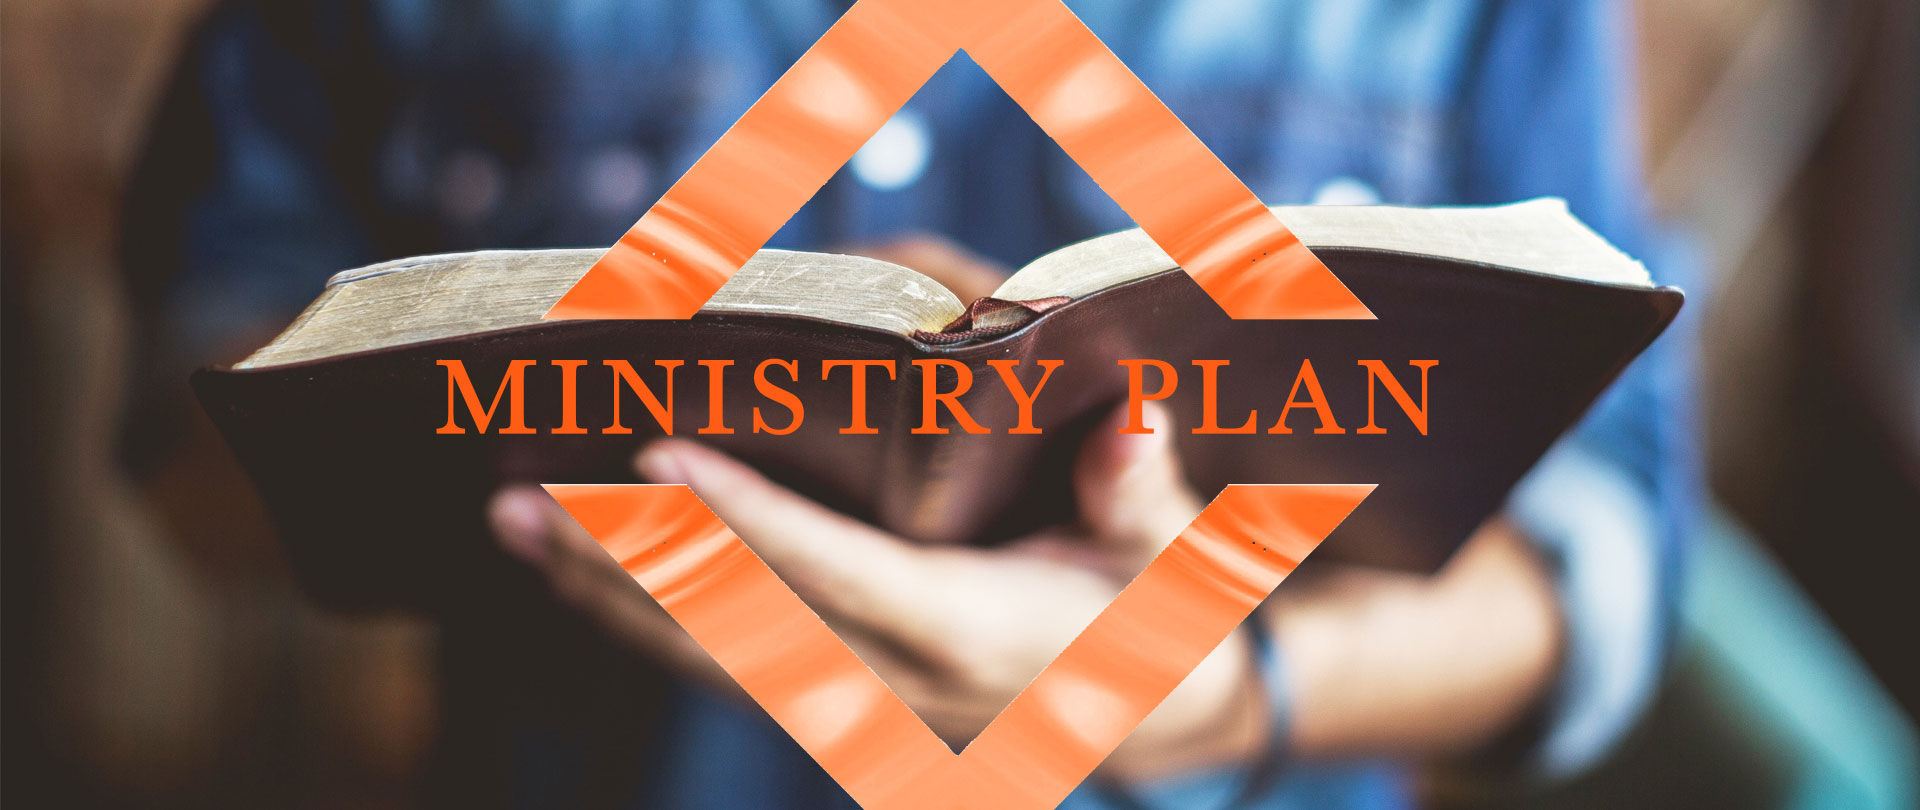 Ministry Plan